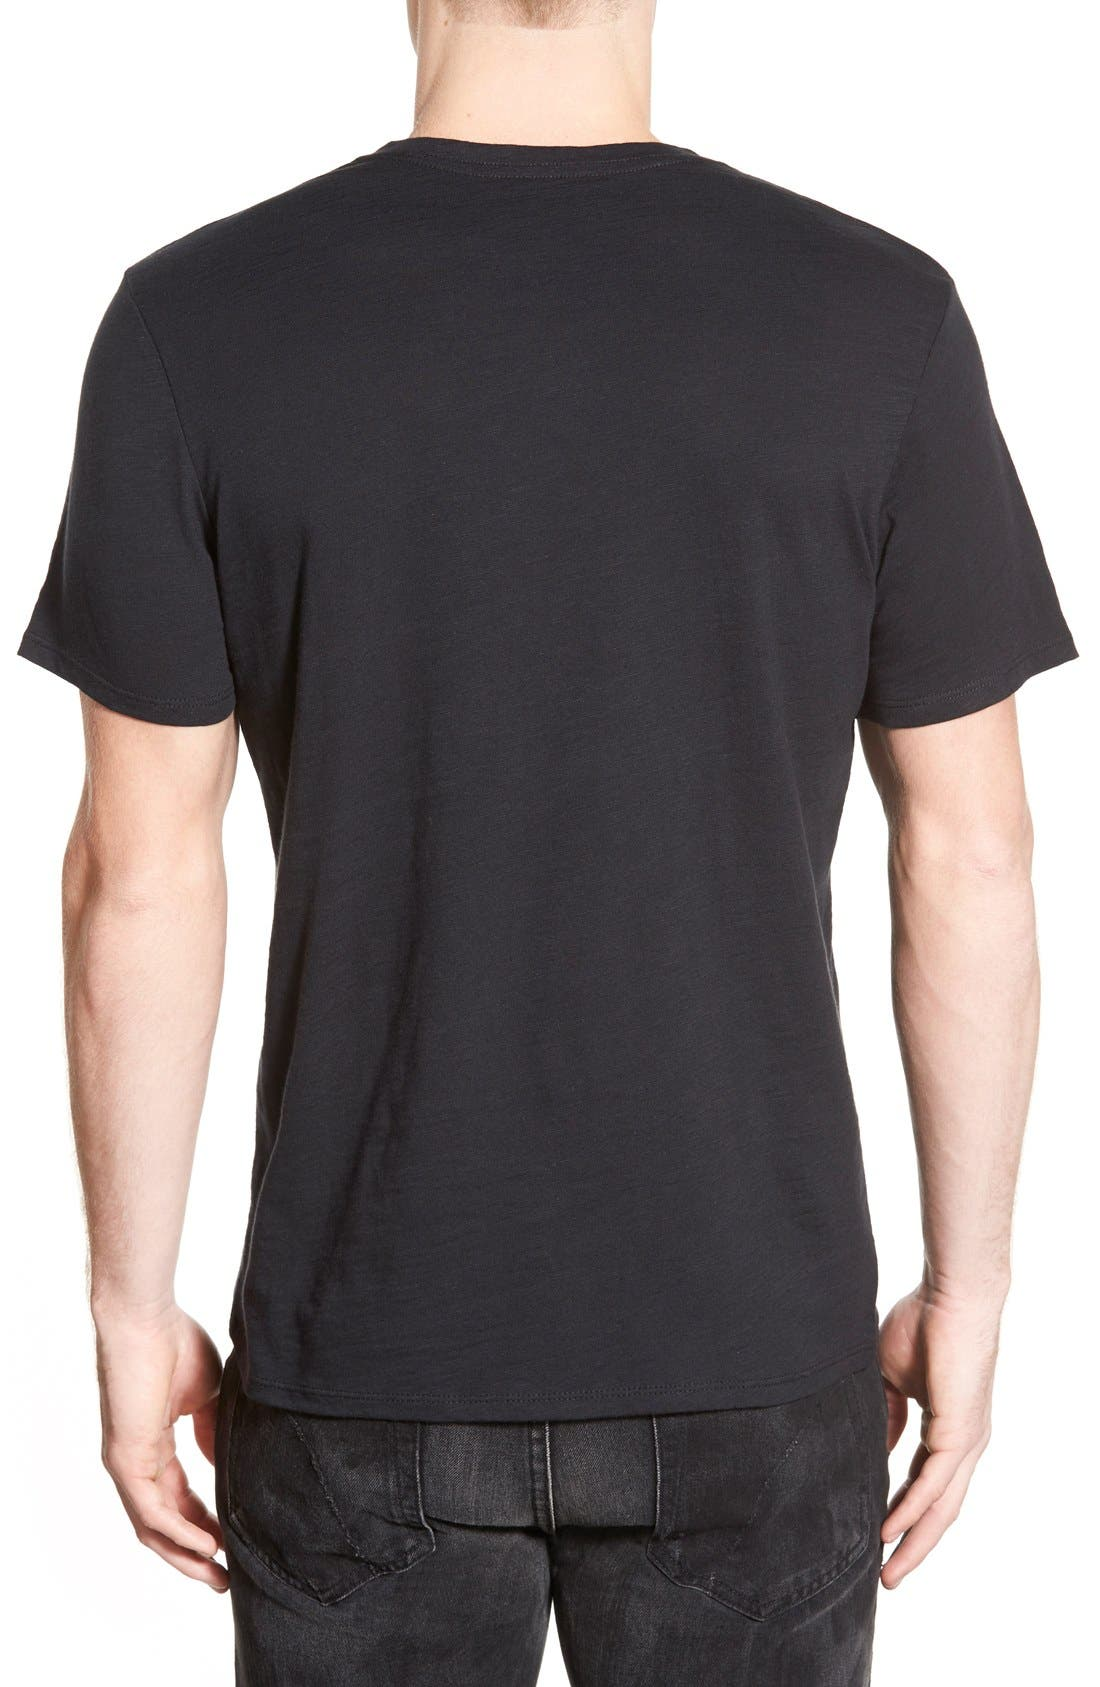 THE RAIL, Slub Cotton V-Neck T-Shirt, Main thumbnail 1, color, BLACK